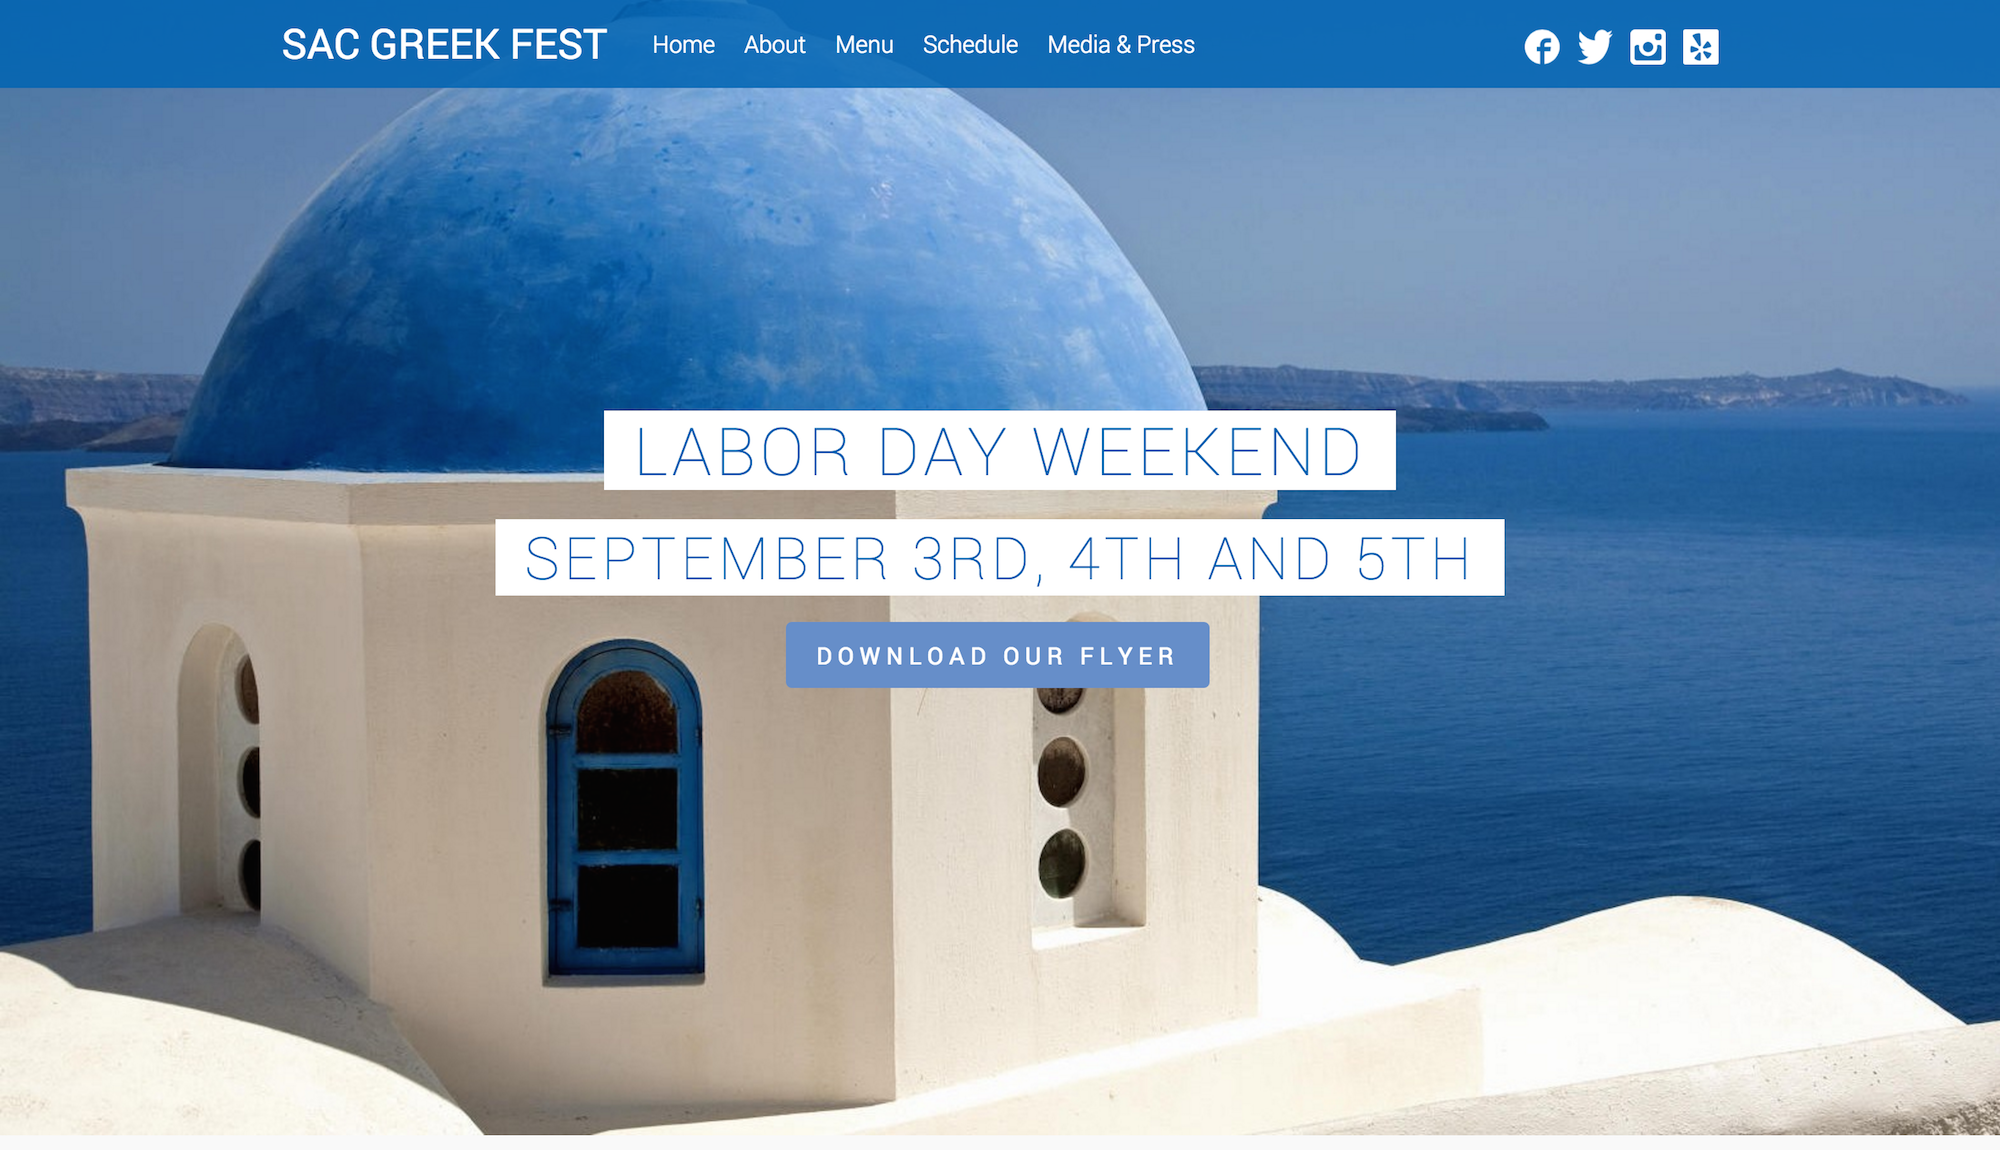 Home – SAC GREEK FEST